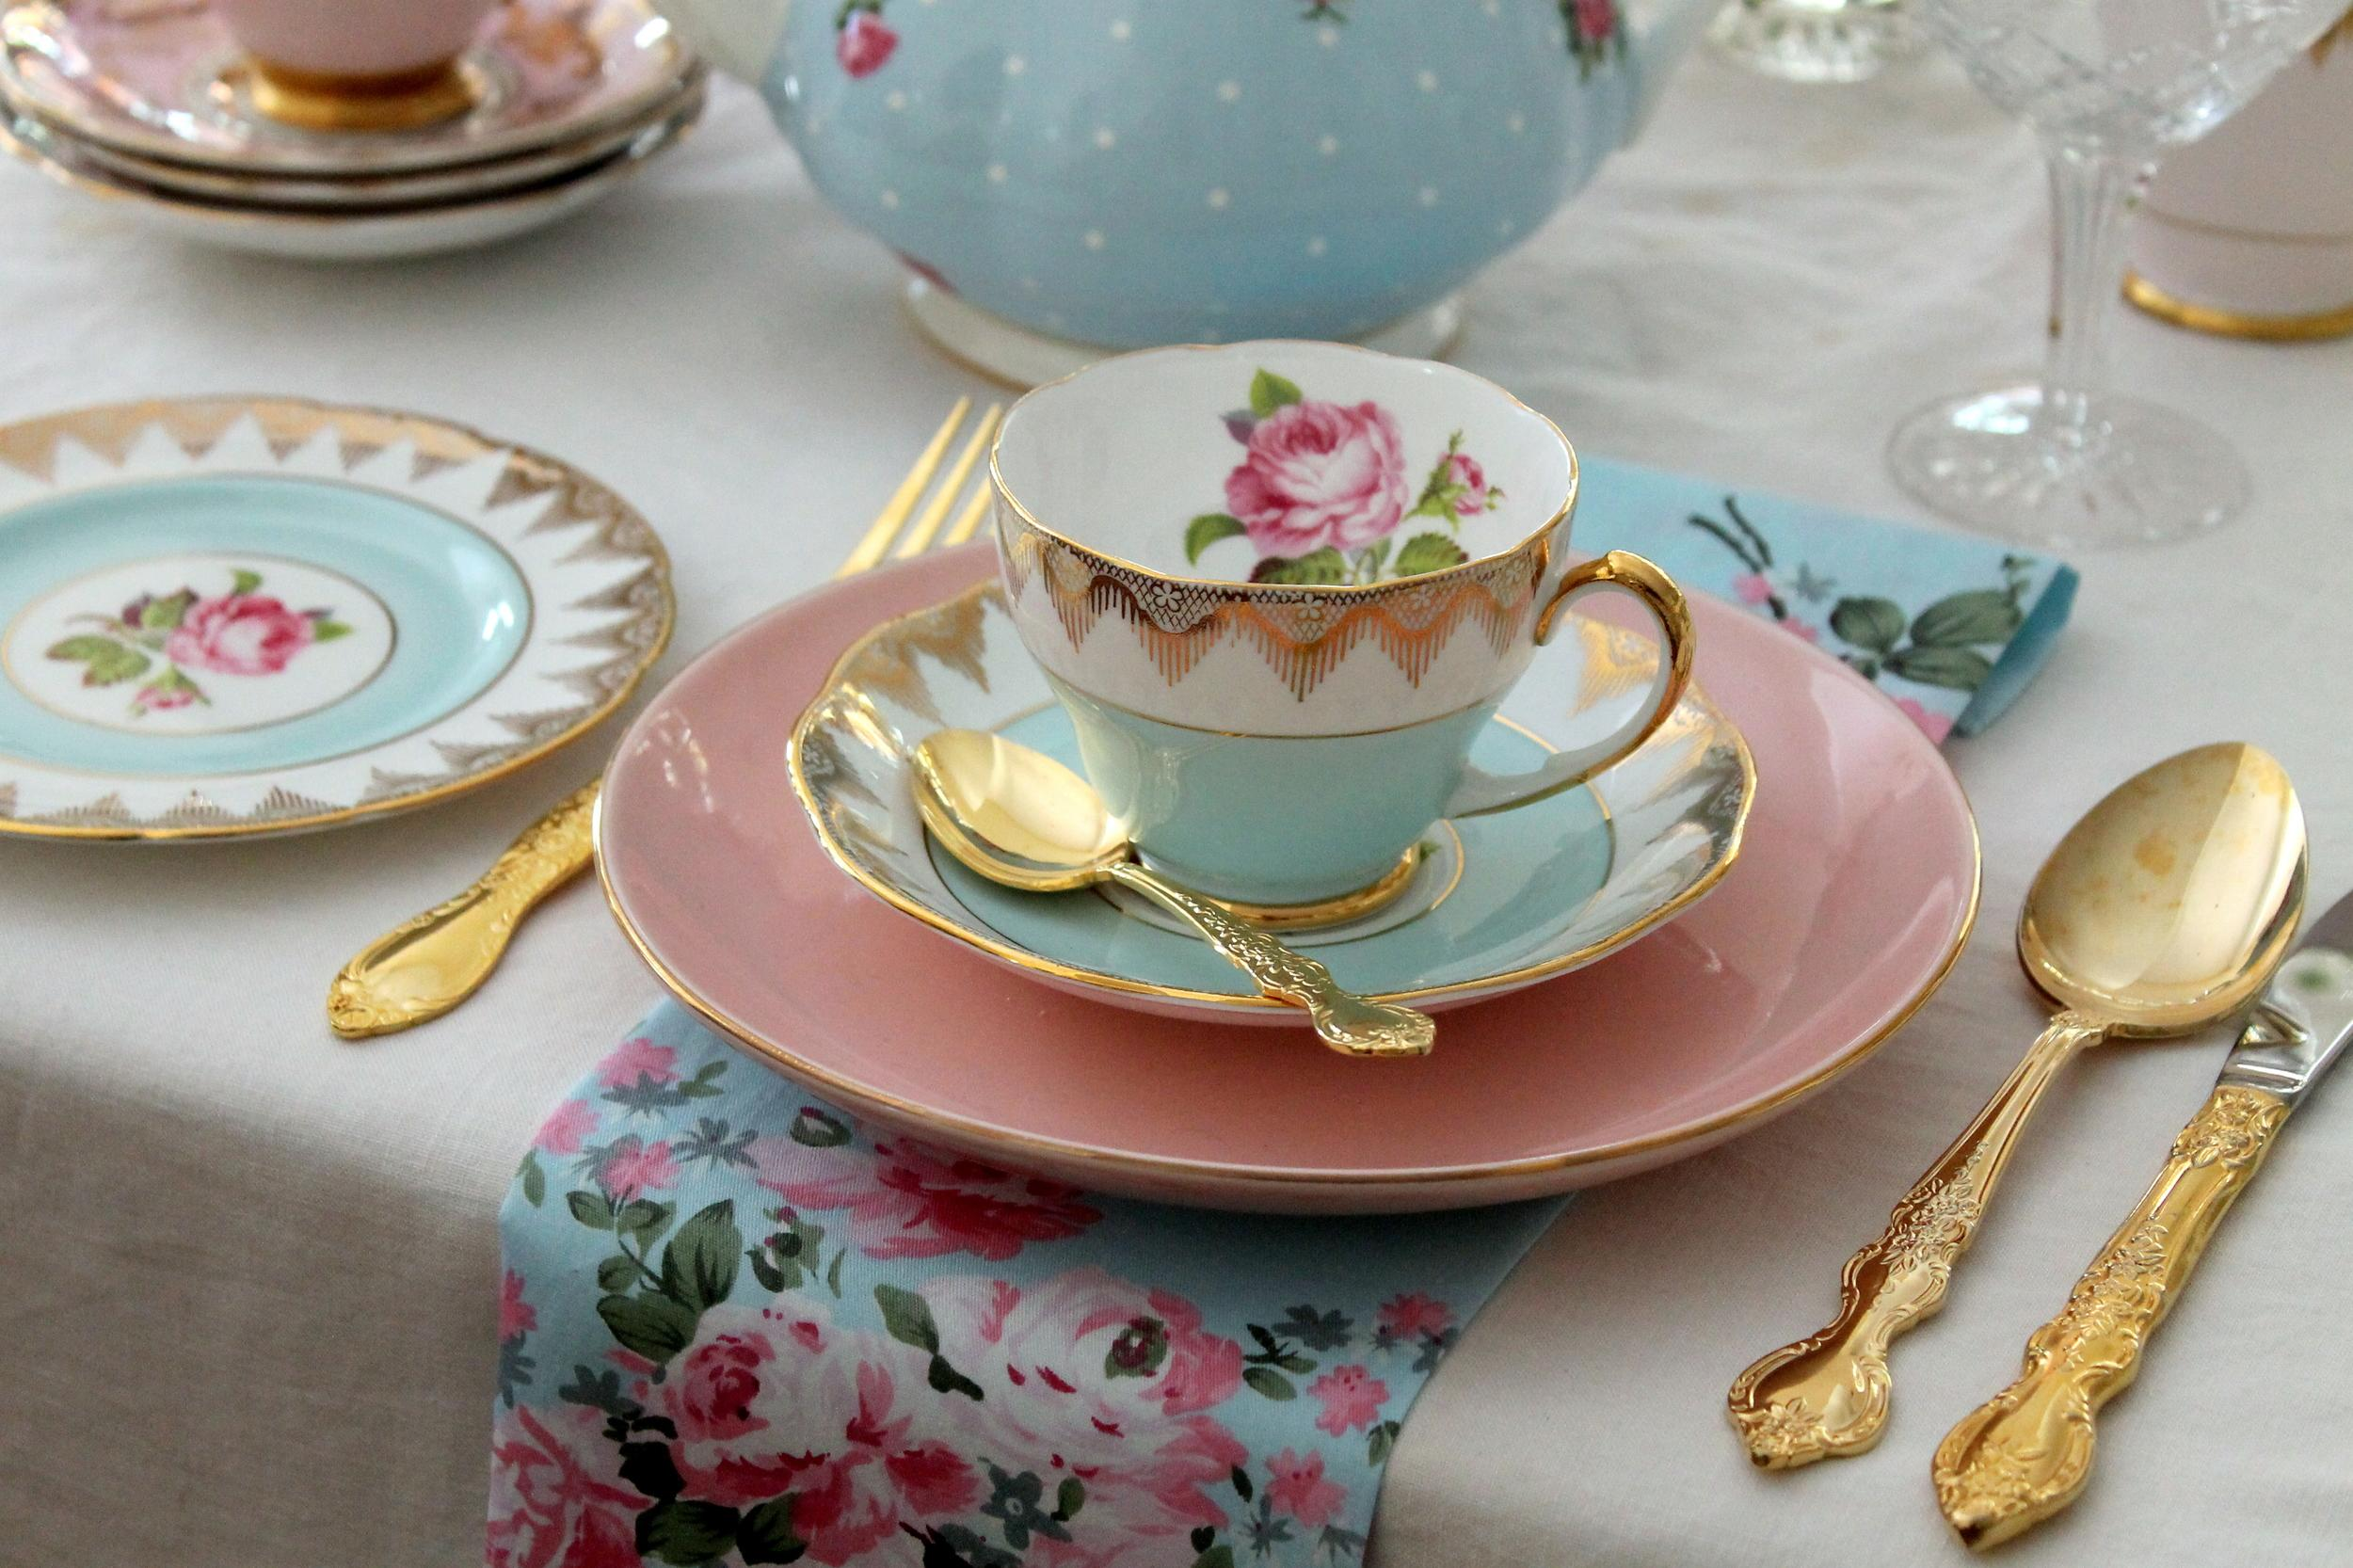 High tea bridal shower place setting pink and blue vintage teacups plates gold cutlery flatware on lace tablecloth - wedding party